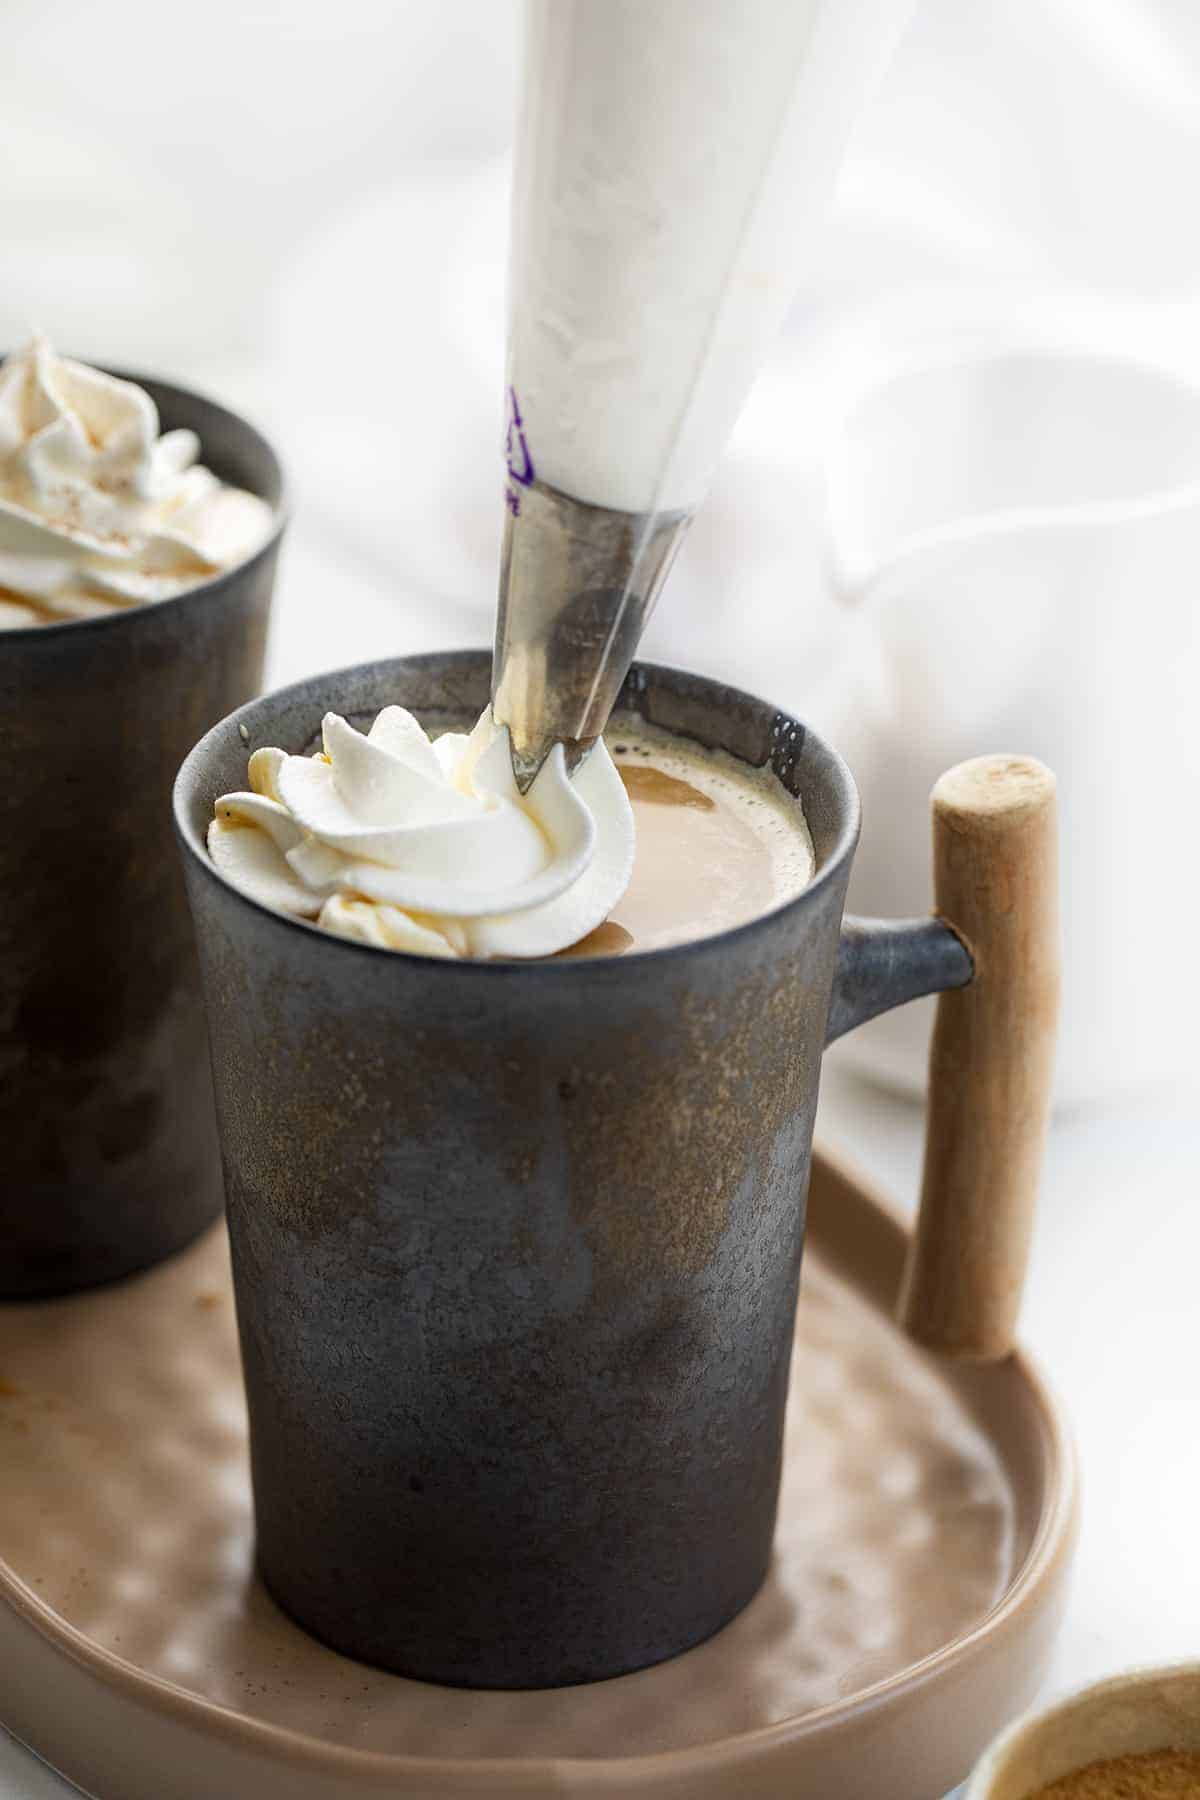 Adding Whipped Cream to Pumpkin Spice Latte